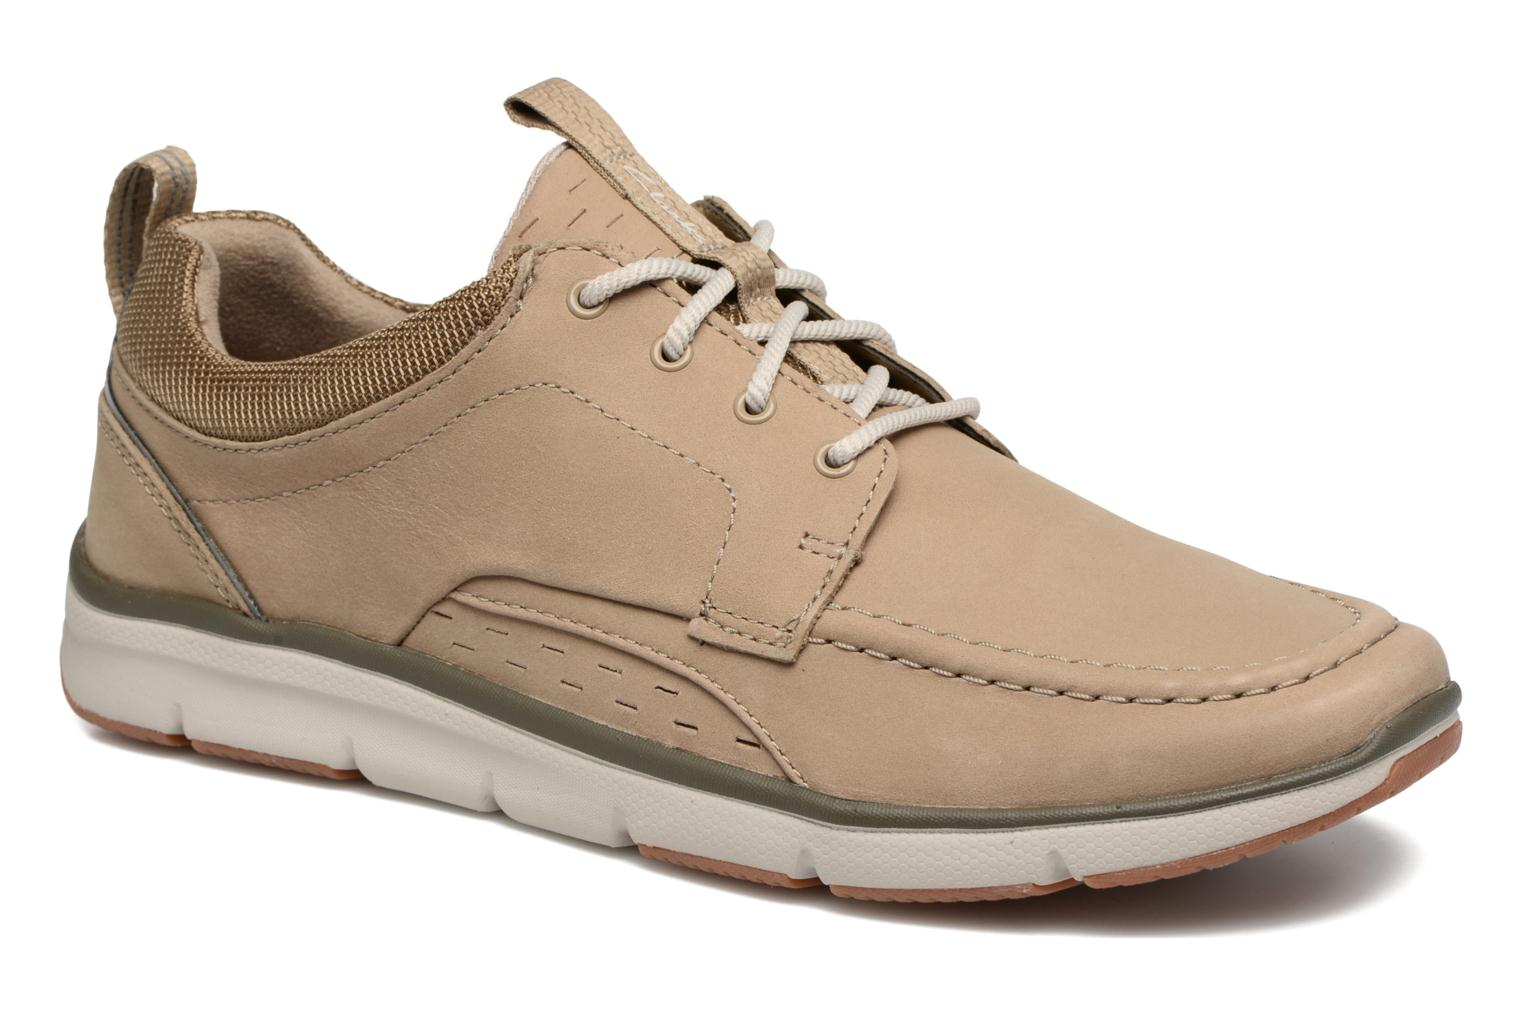 veterschoenen-orson-bay-by-clarks